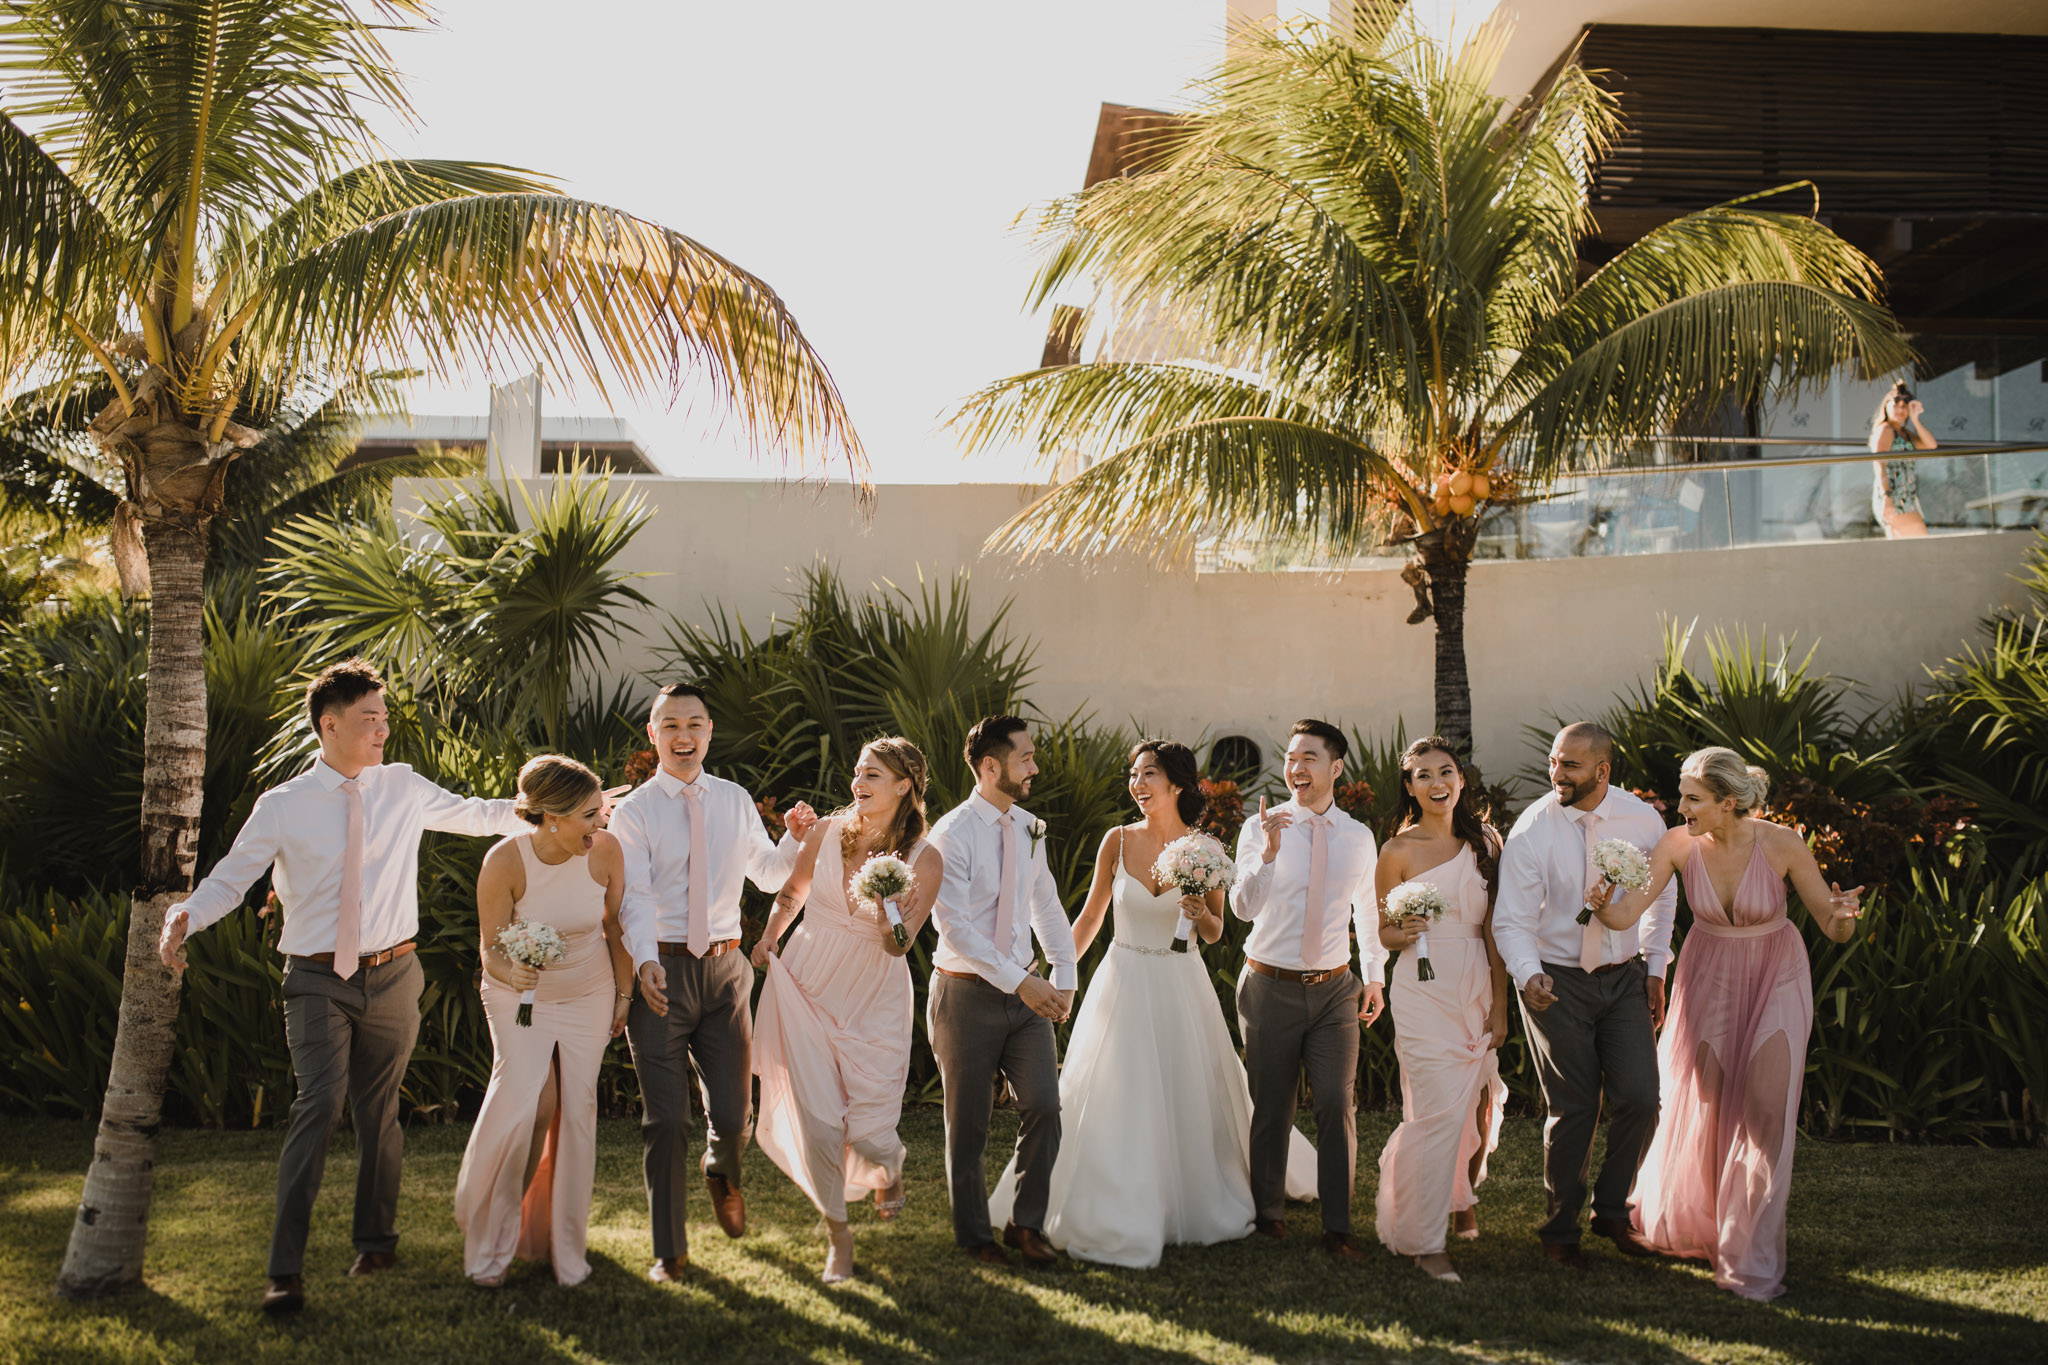 Cancun Mexico Wedding - wedding party with palm trees